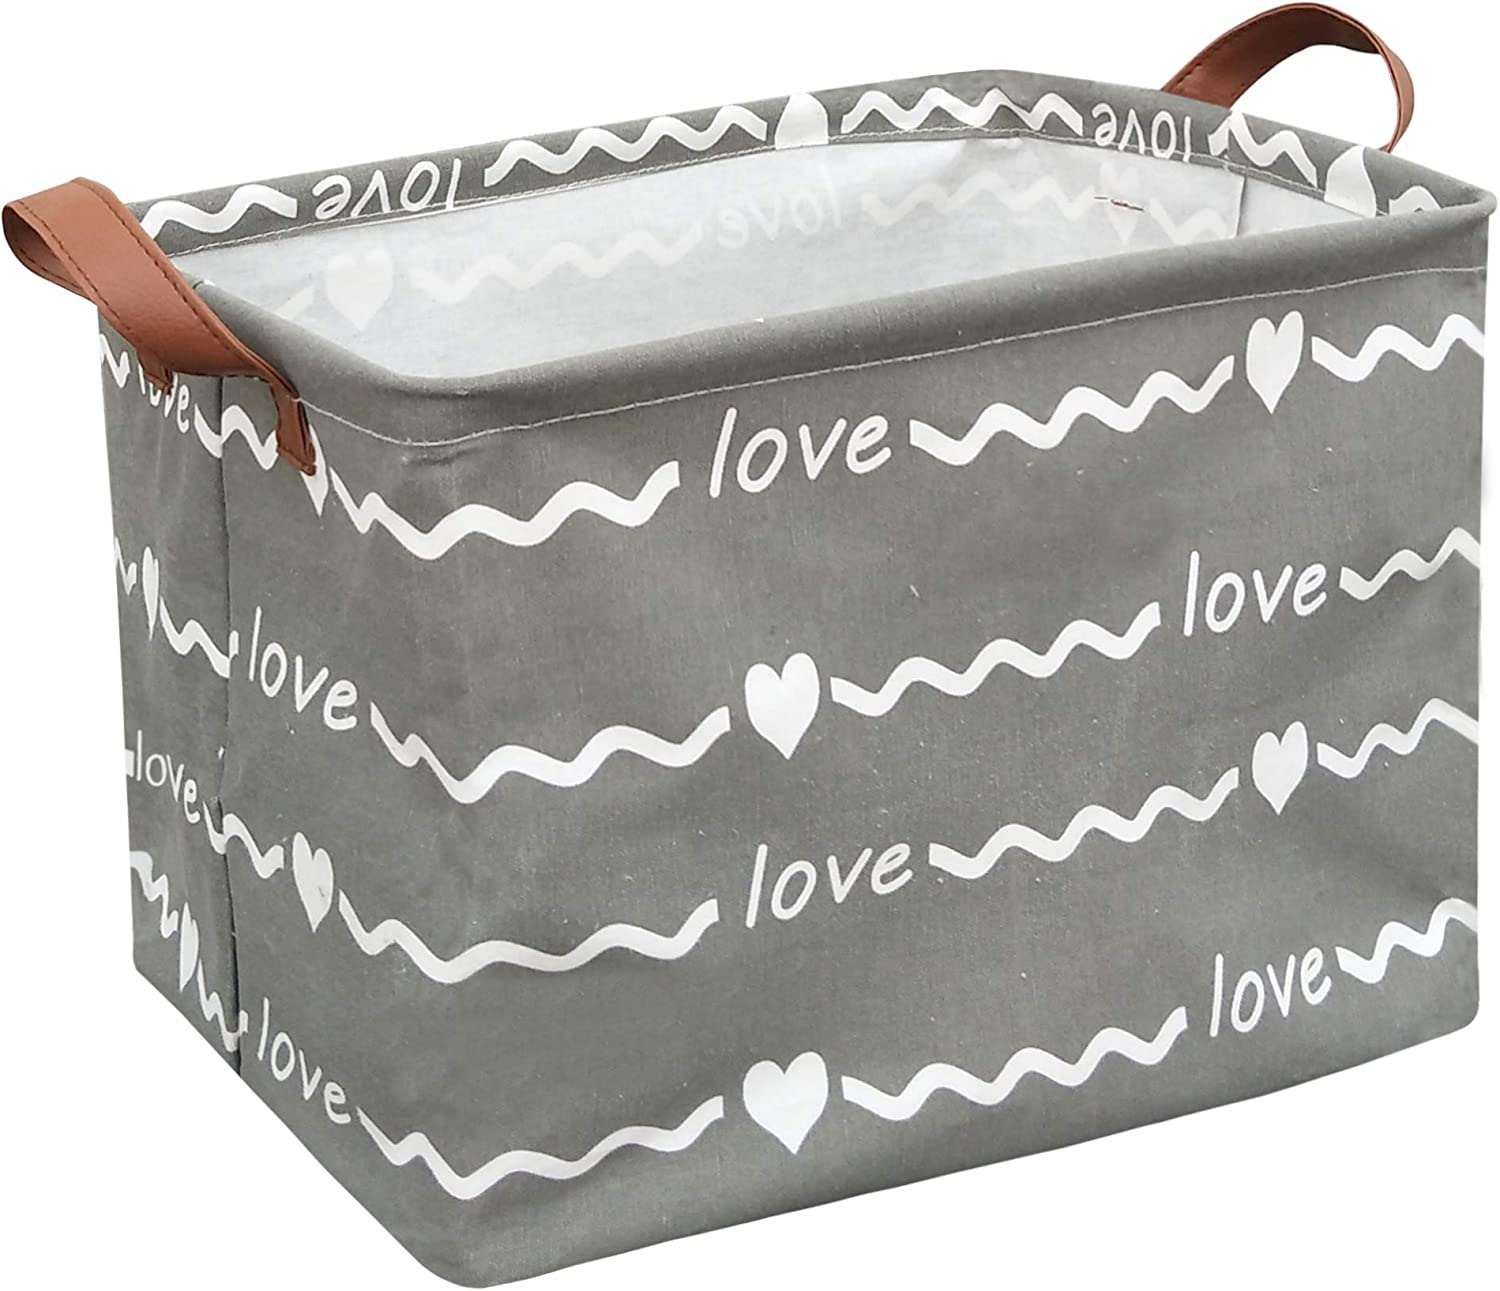 Sanjiaofen Rectangular Fabric Storage Bin,Collapsible Storage Basket,Waterproof Coating Toy Organizer with Handles,Gift Basket for Home,Office,Clothes,Toy,Shelf Basket(Rec-Wave Love)